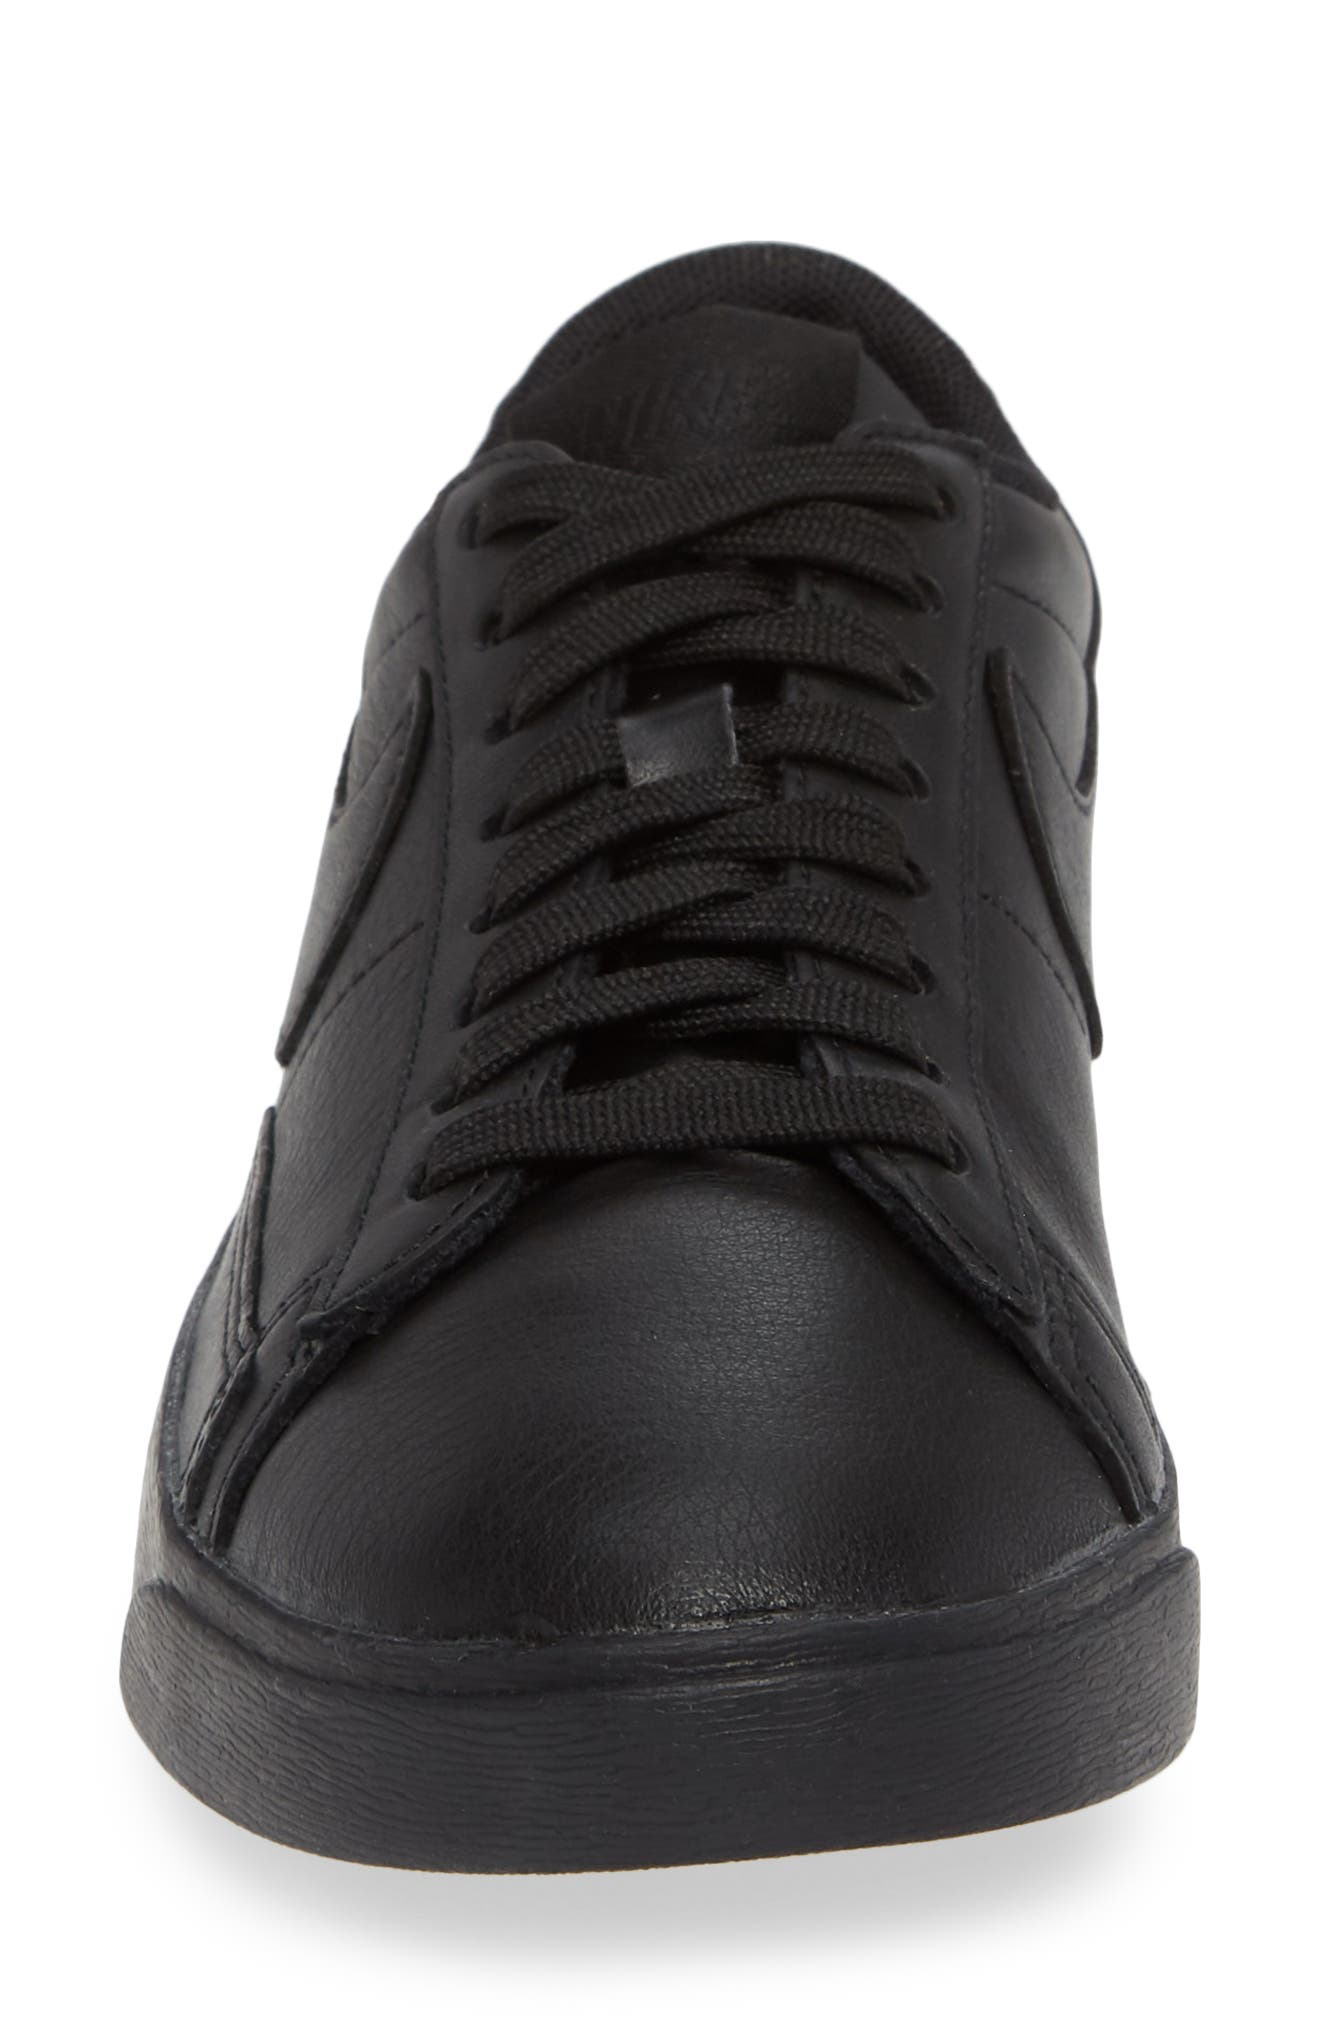 Blazer Low SE Sneaker,                             Alternate thumbnail 4, color,                             BLACK/ BLACK-BLACK